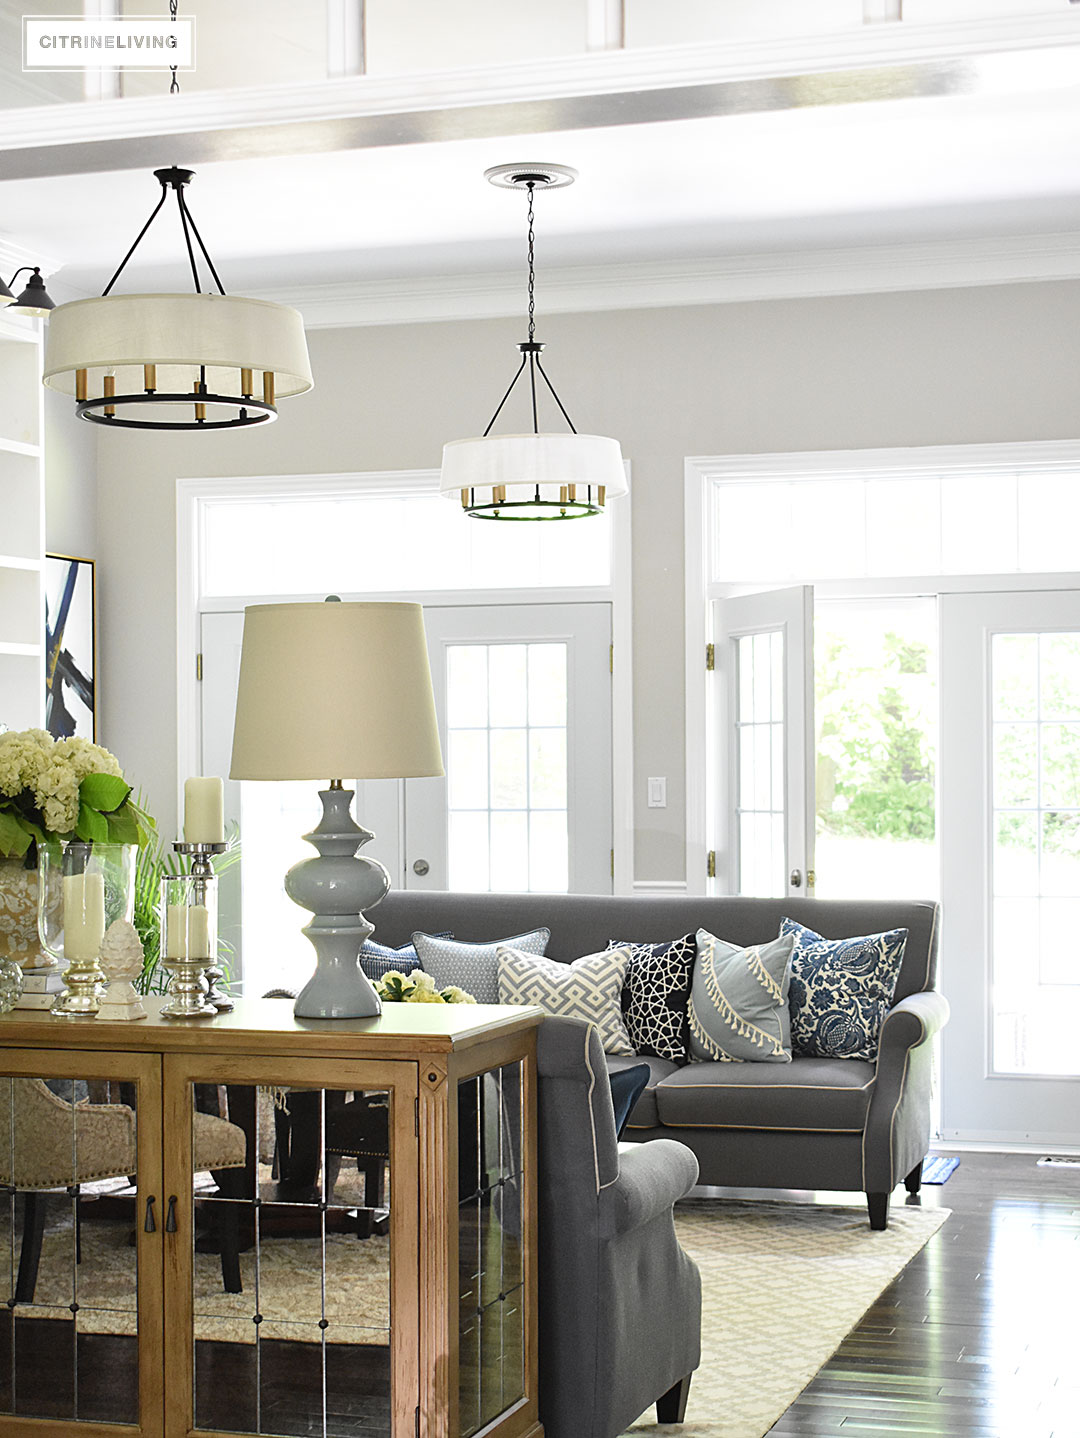 Elegant, open concept living room, with with grey sofas and drum shade pendant lights create a neutral backdrop of layers of beautiful blue patterned pillows. Decorated for Summer with fresh cut greenery, hydrangeas and palms.